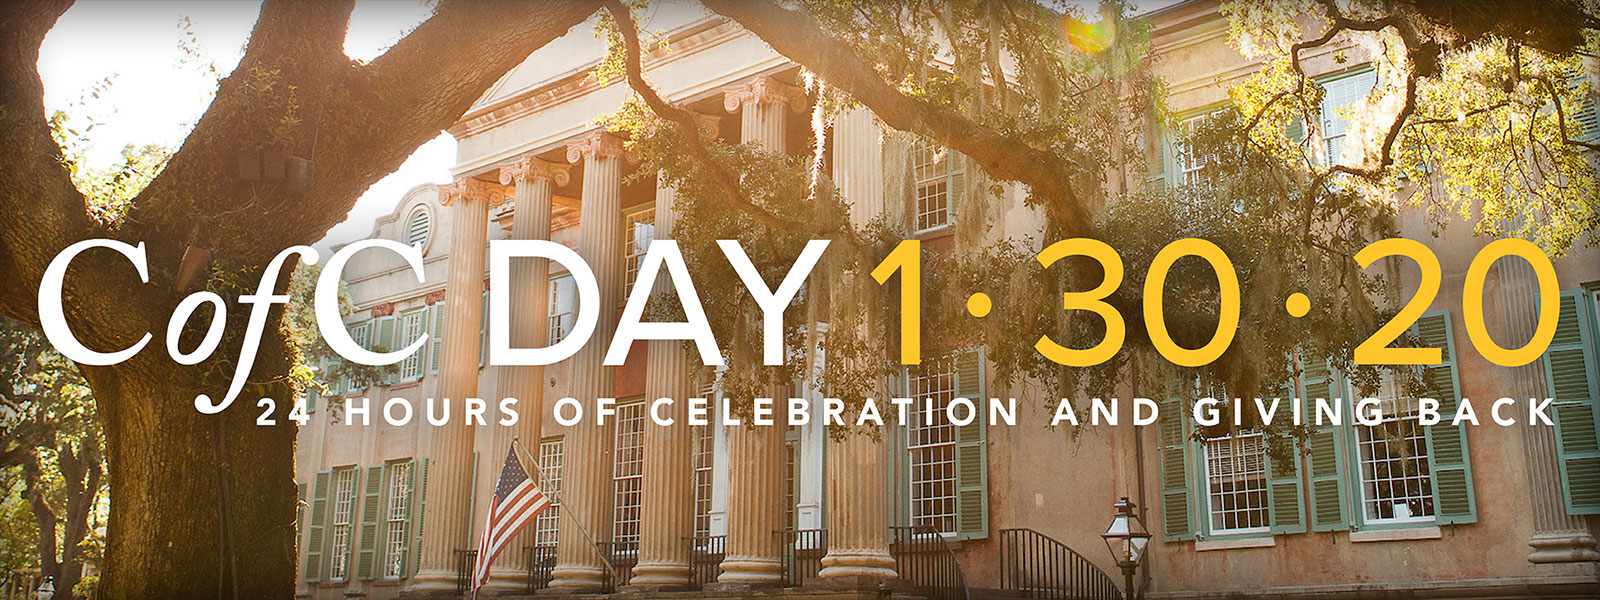 CofC Day – Thank You!